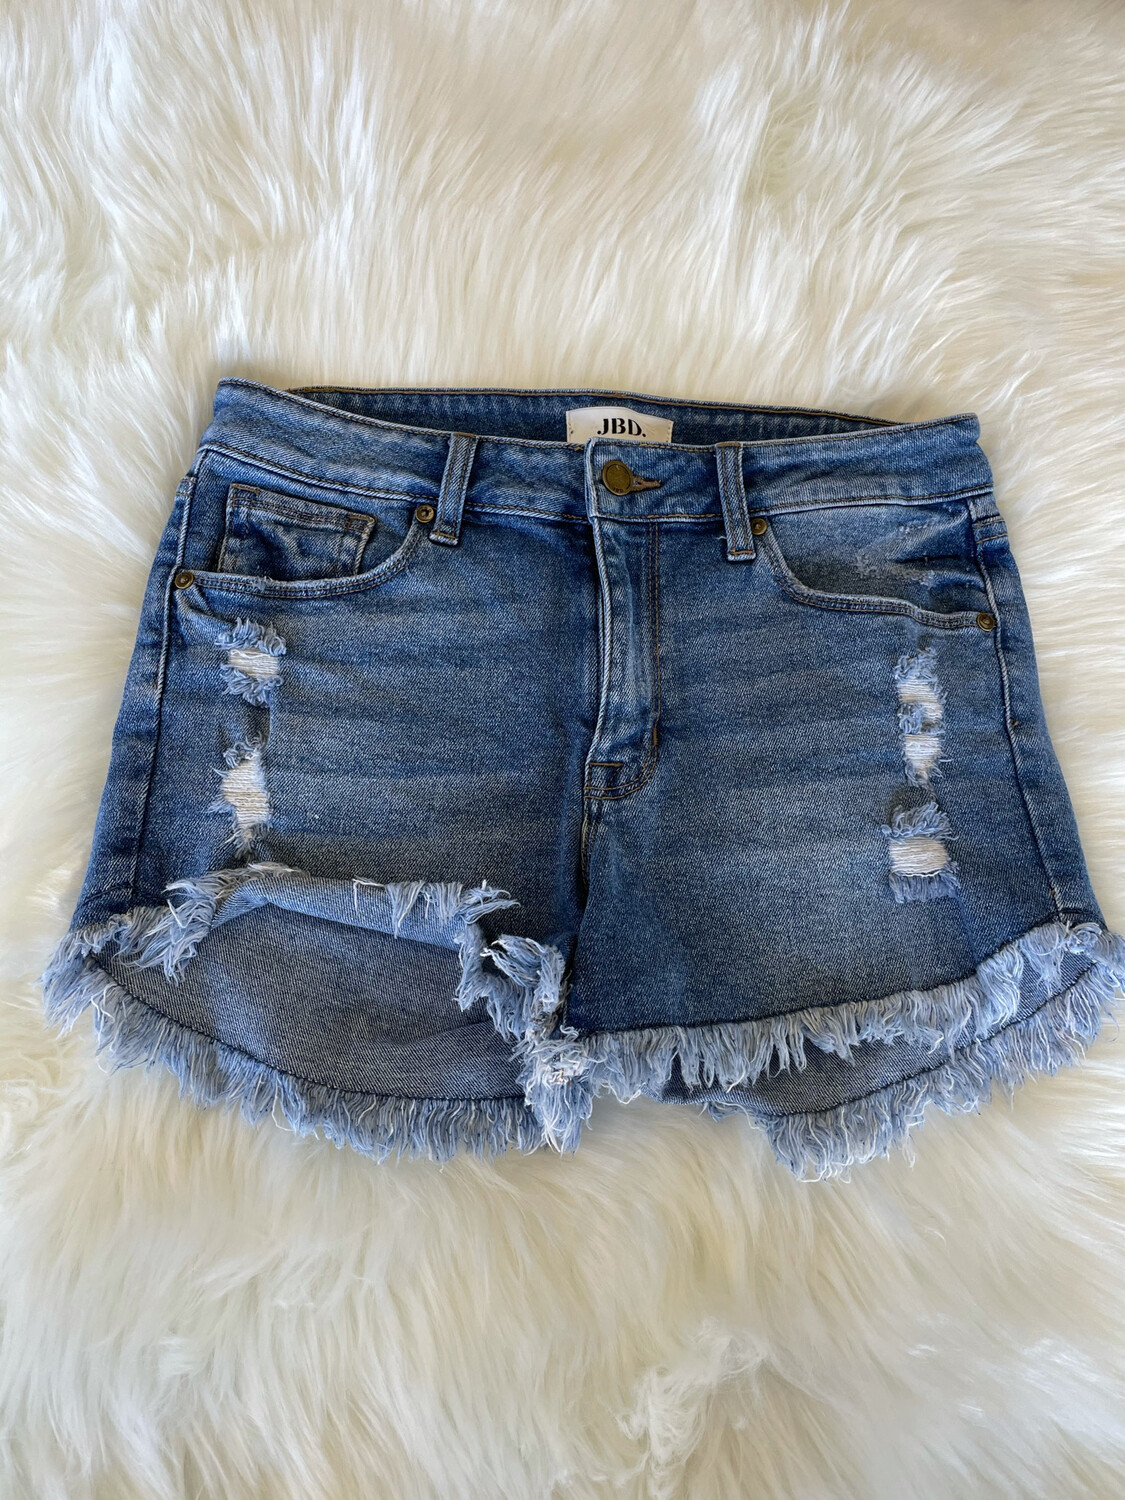 JBD Distressed Denim Shorts - M